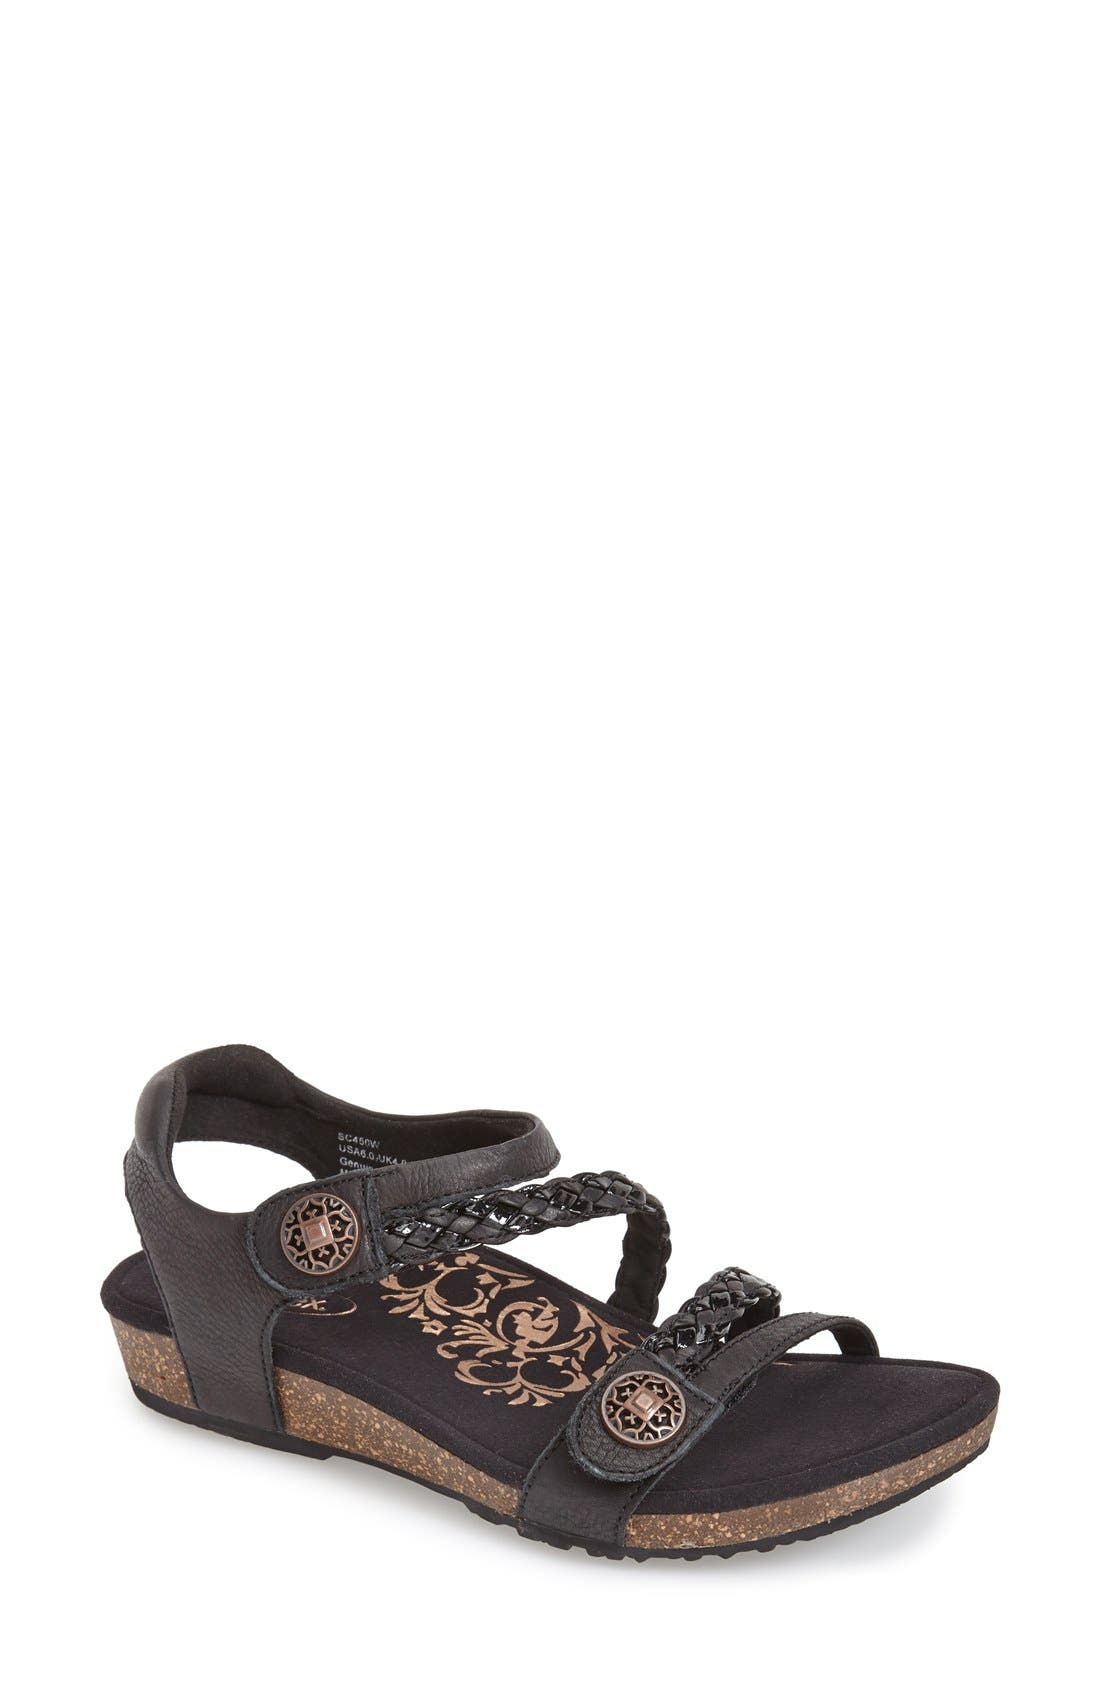 Aetrex 'Jillian' Braided Leather Strap Sandal (Women)